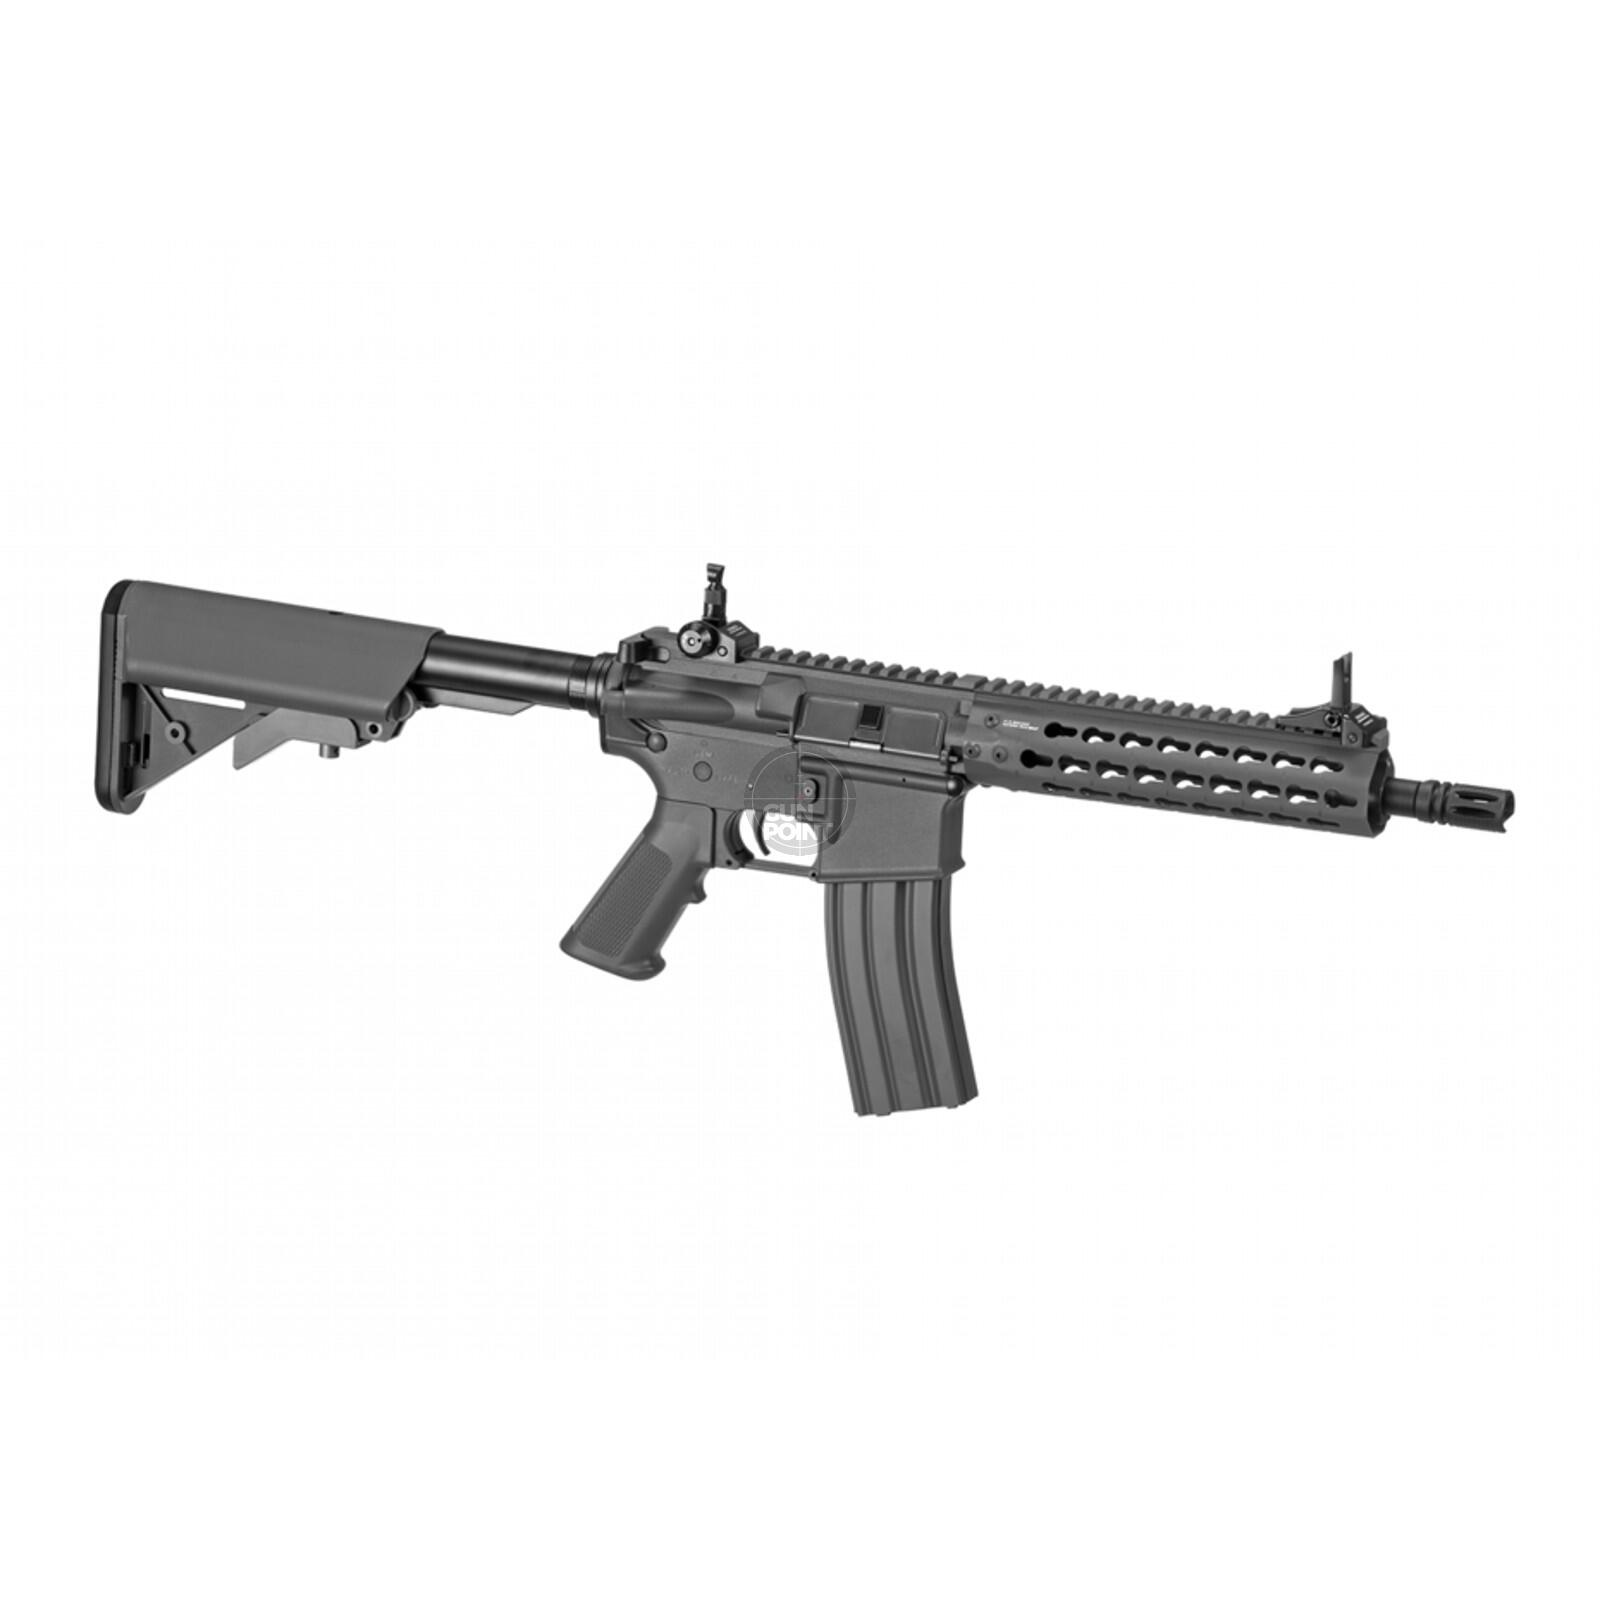 Softair - Gewehr - G & G Armament CM15 CQB 8,5 Grey - ab 18, über 0,5 Joule